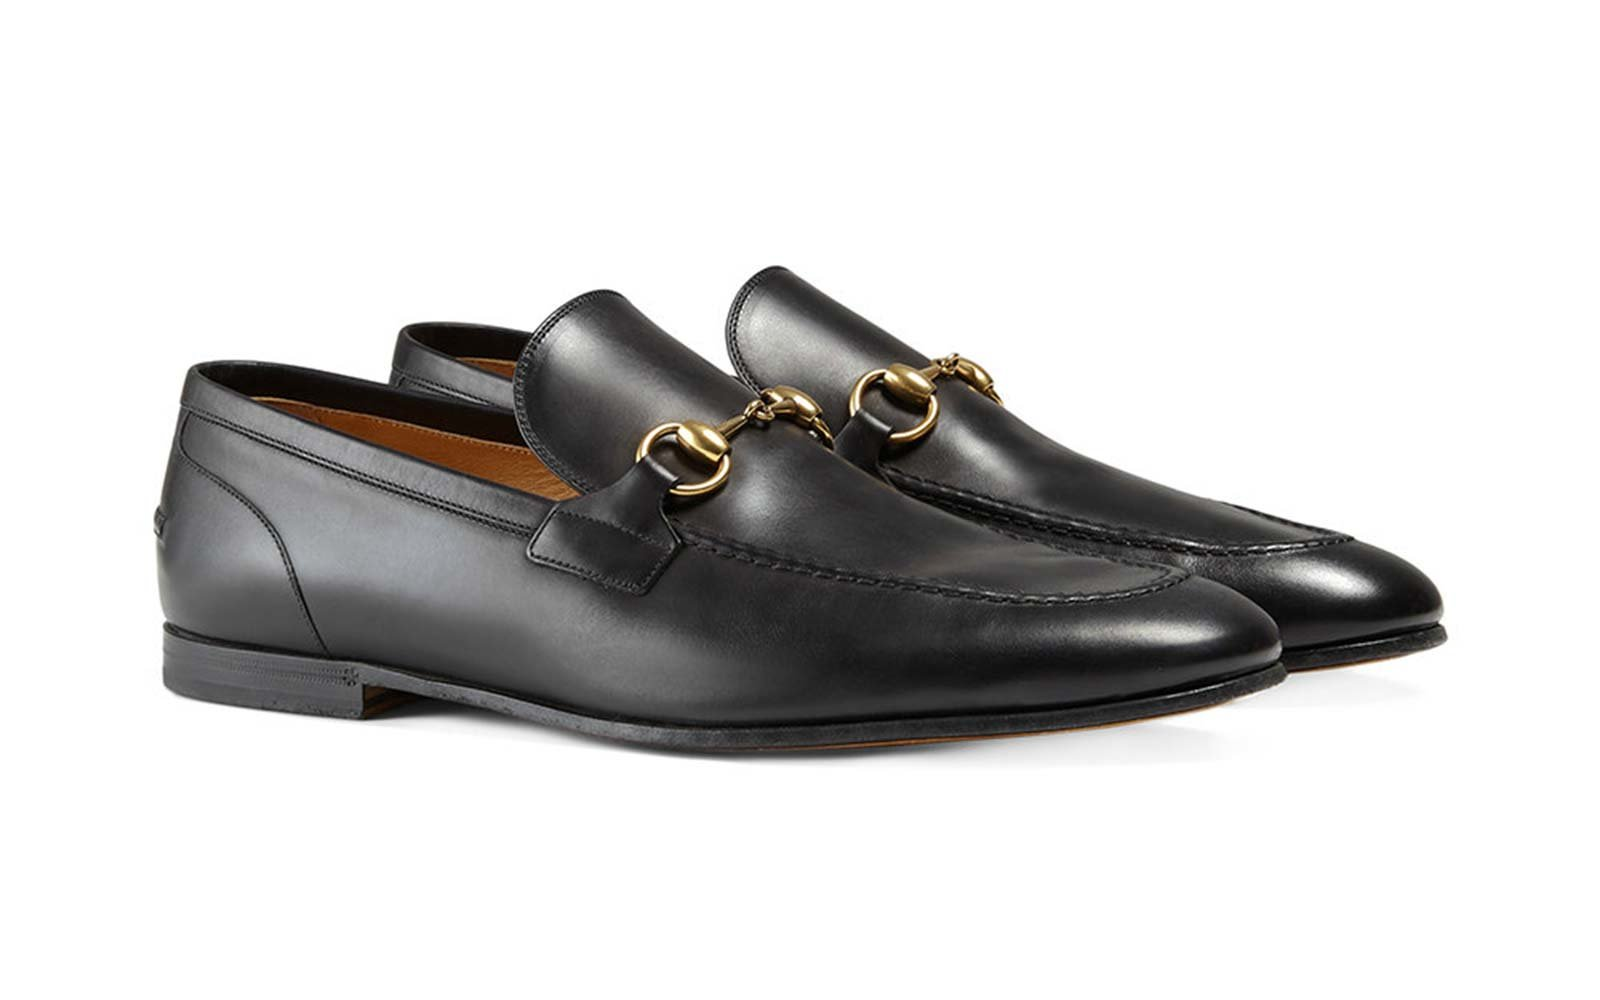 The Best Comfortable Dress Shoes for Men | Travel + Leisure